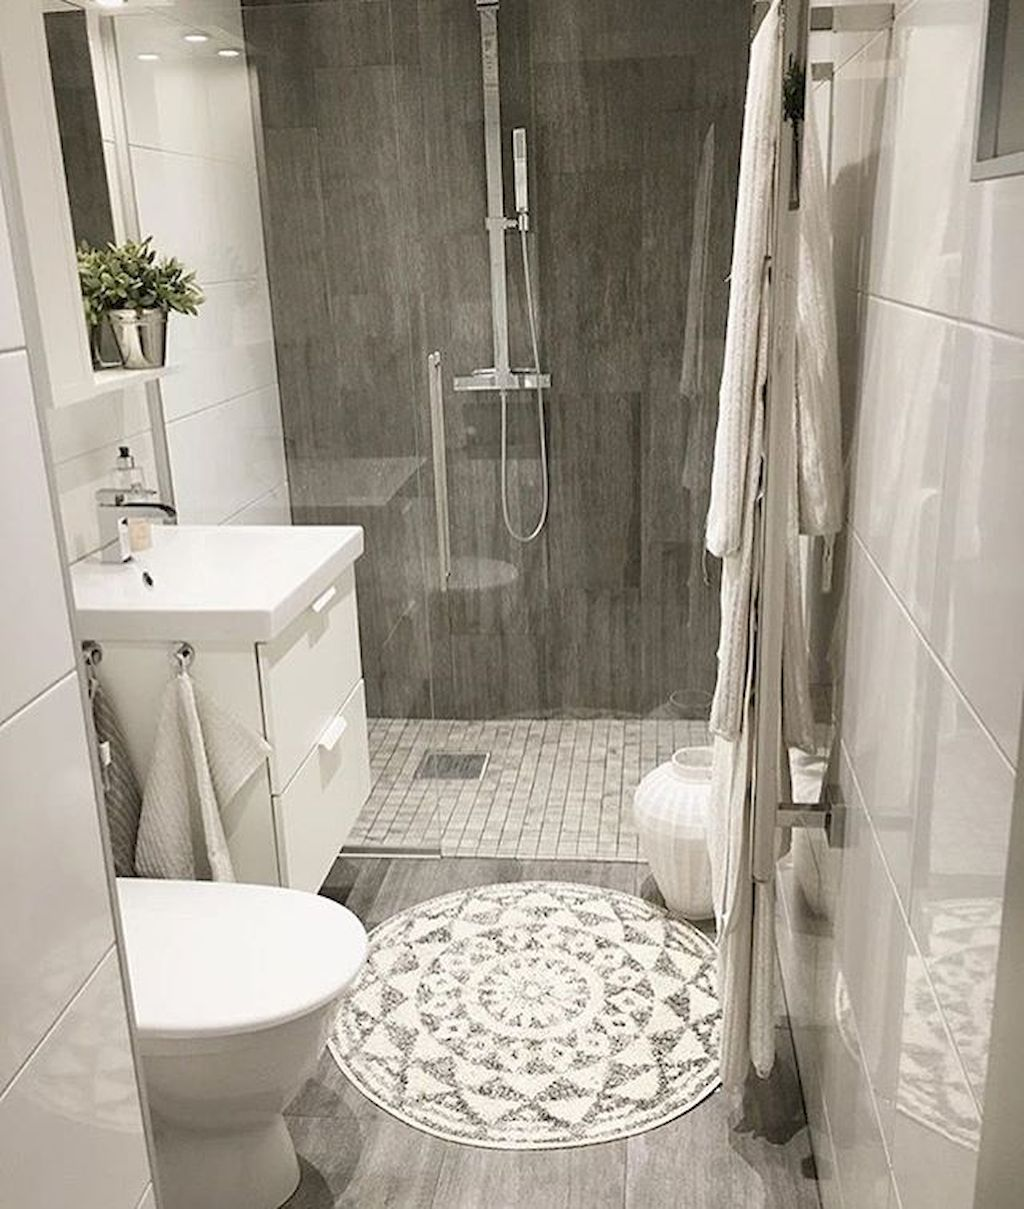 Best Small Bathroom Remodel Ideas On A Budget 4  Small Bathroom Extraordinary Bathroom Renovation Ideas For Tight Budget 2018